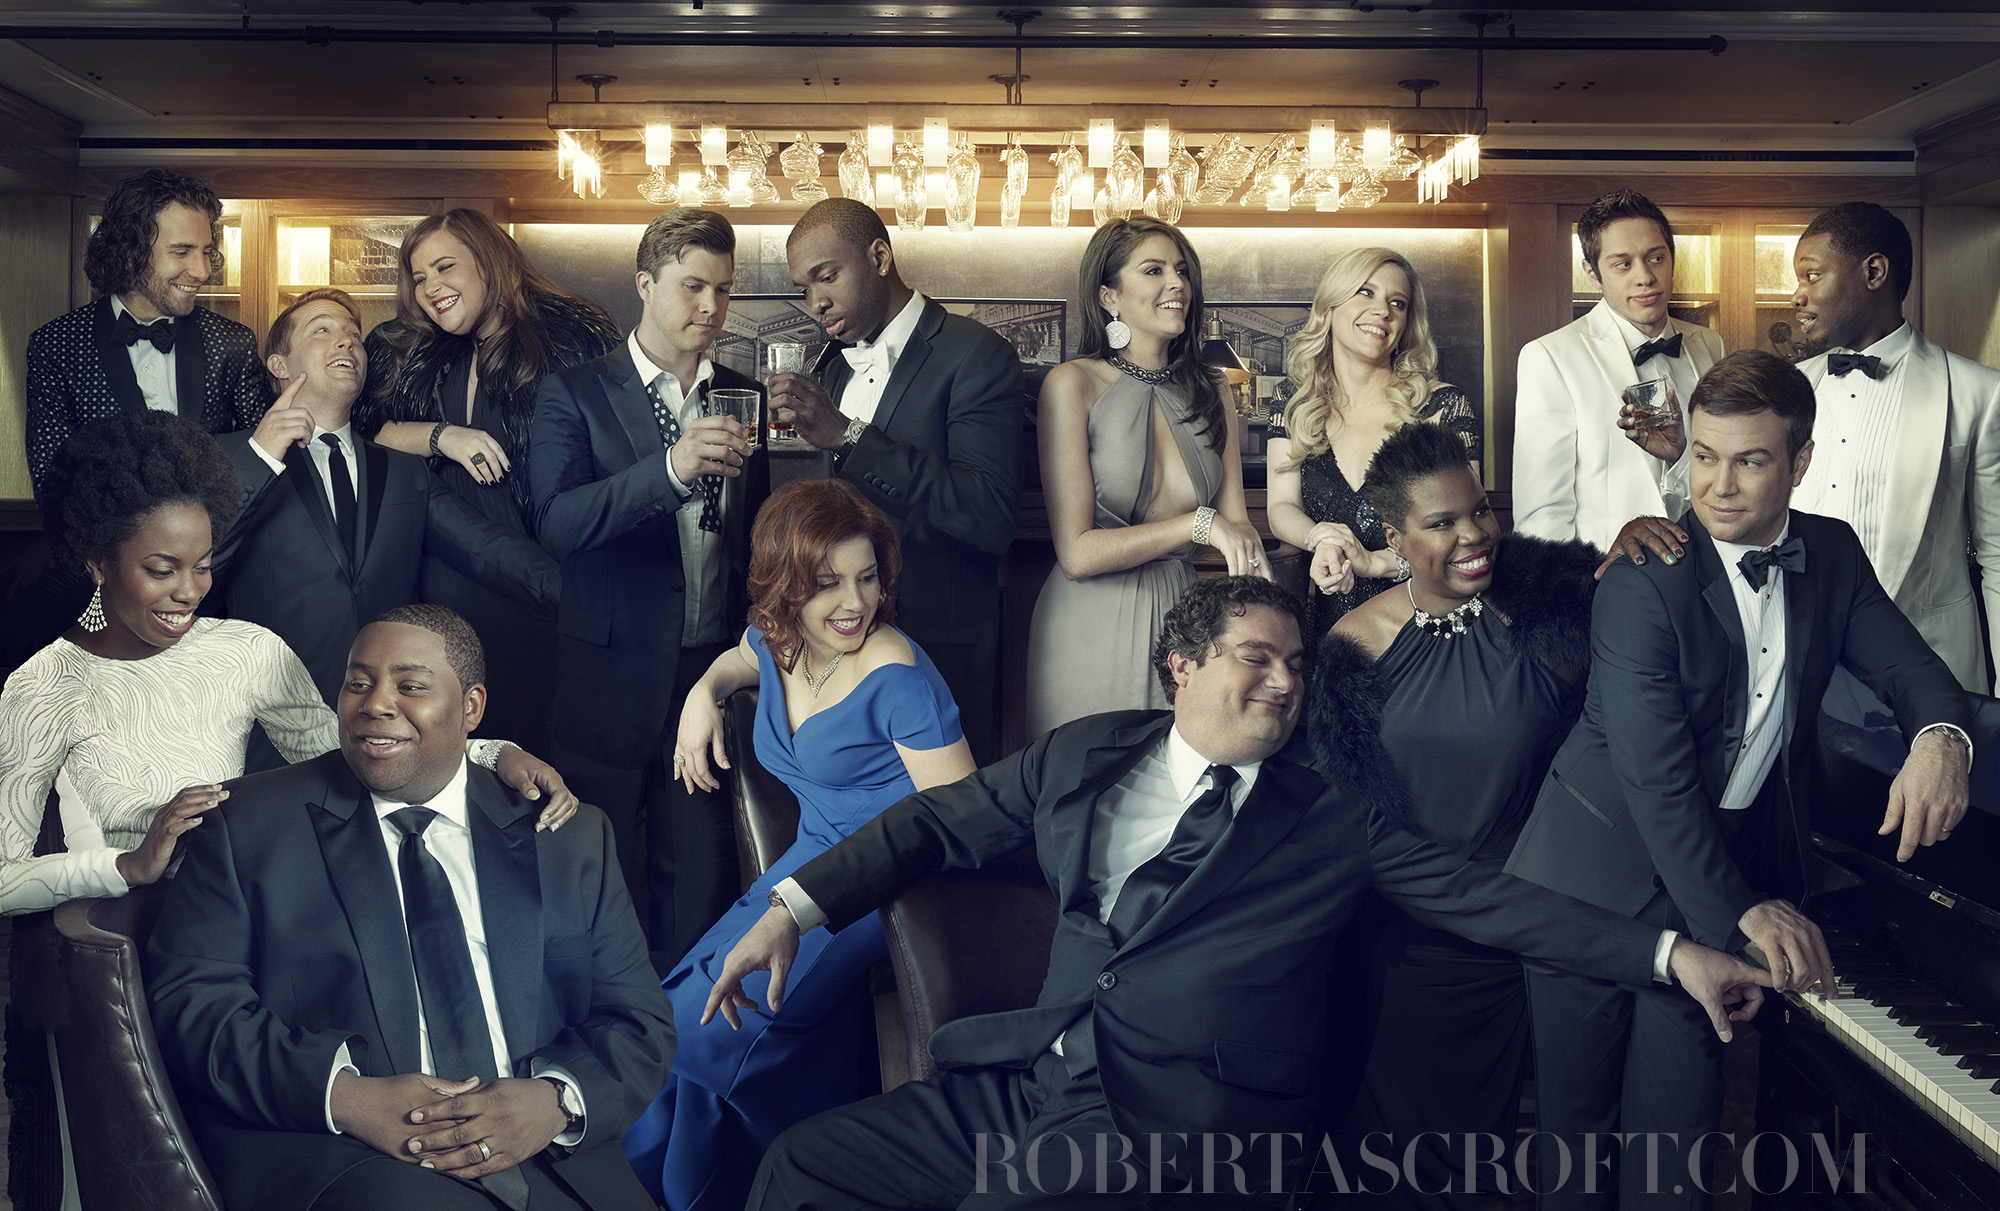 SNL-CAST-BY-ROBERT-ASCROFT